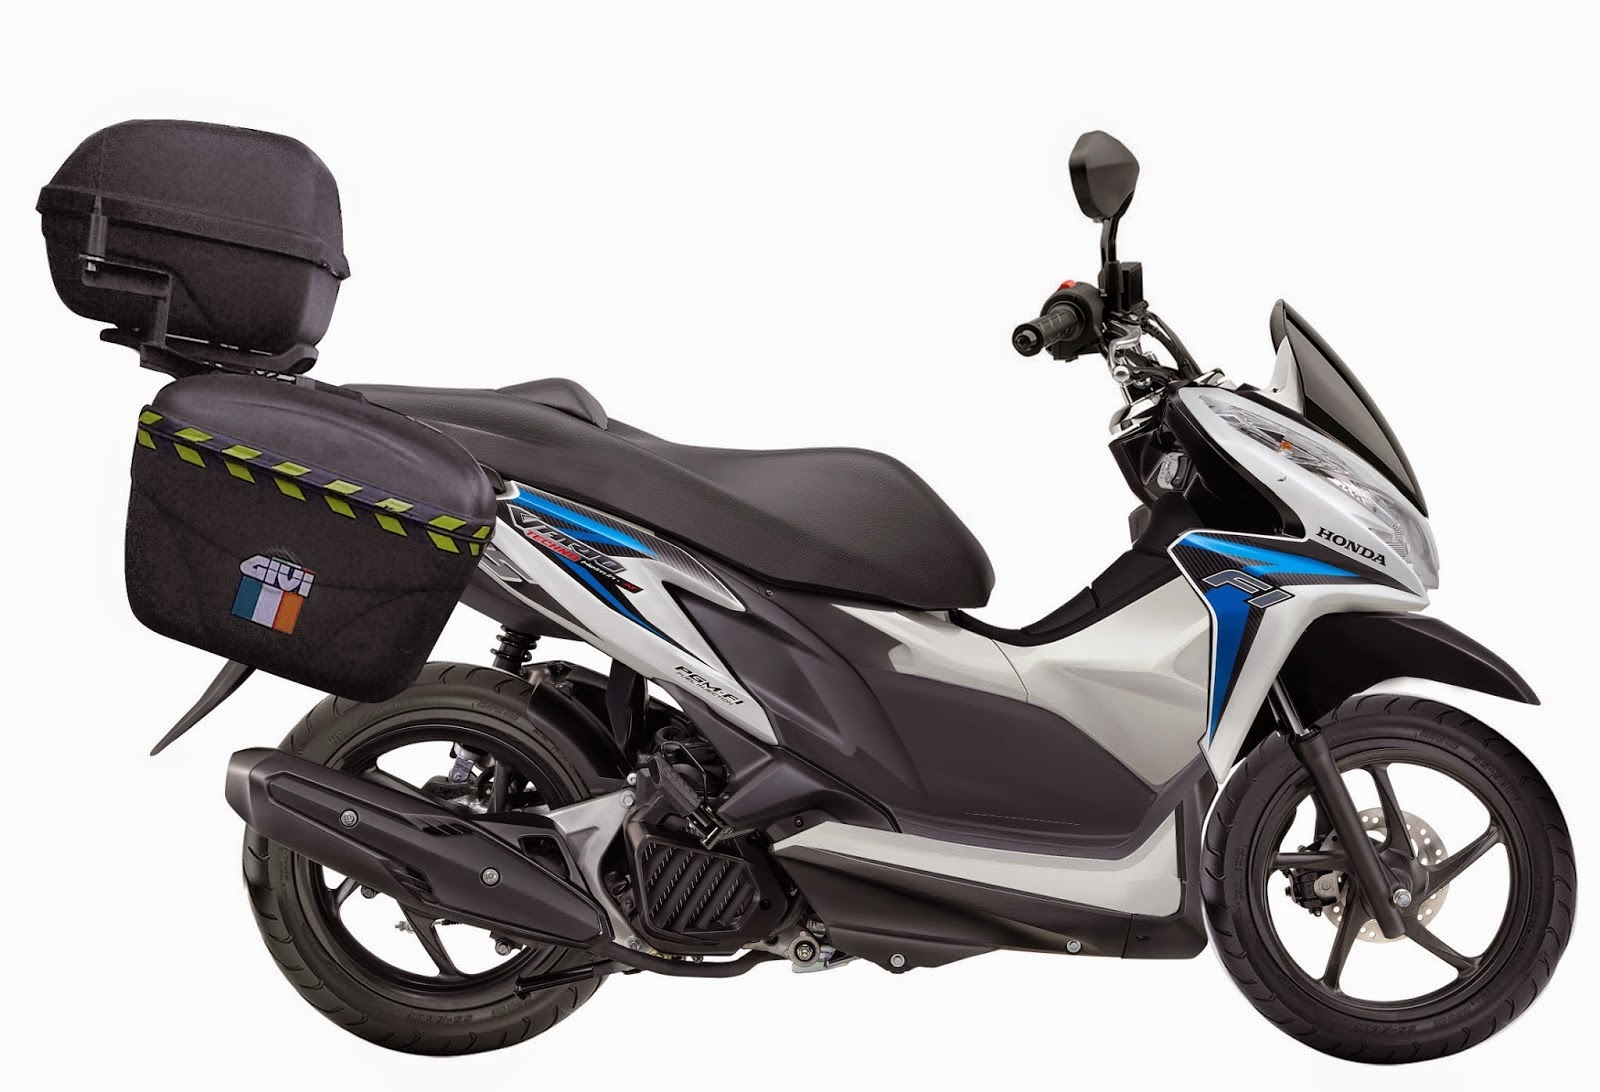 Suzuki Spin 125 Modifikasi